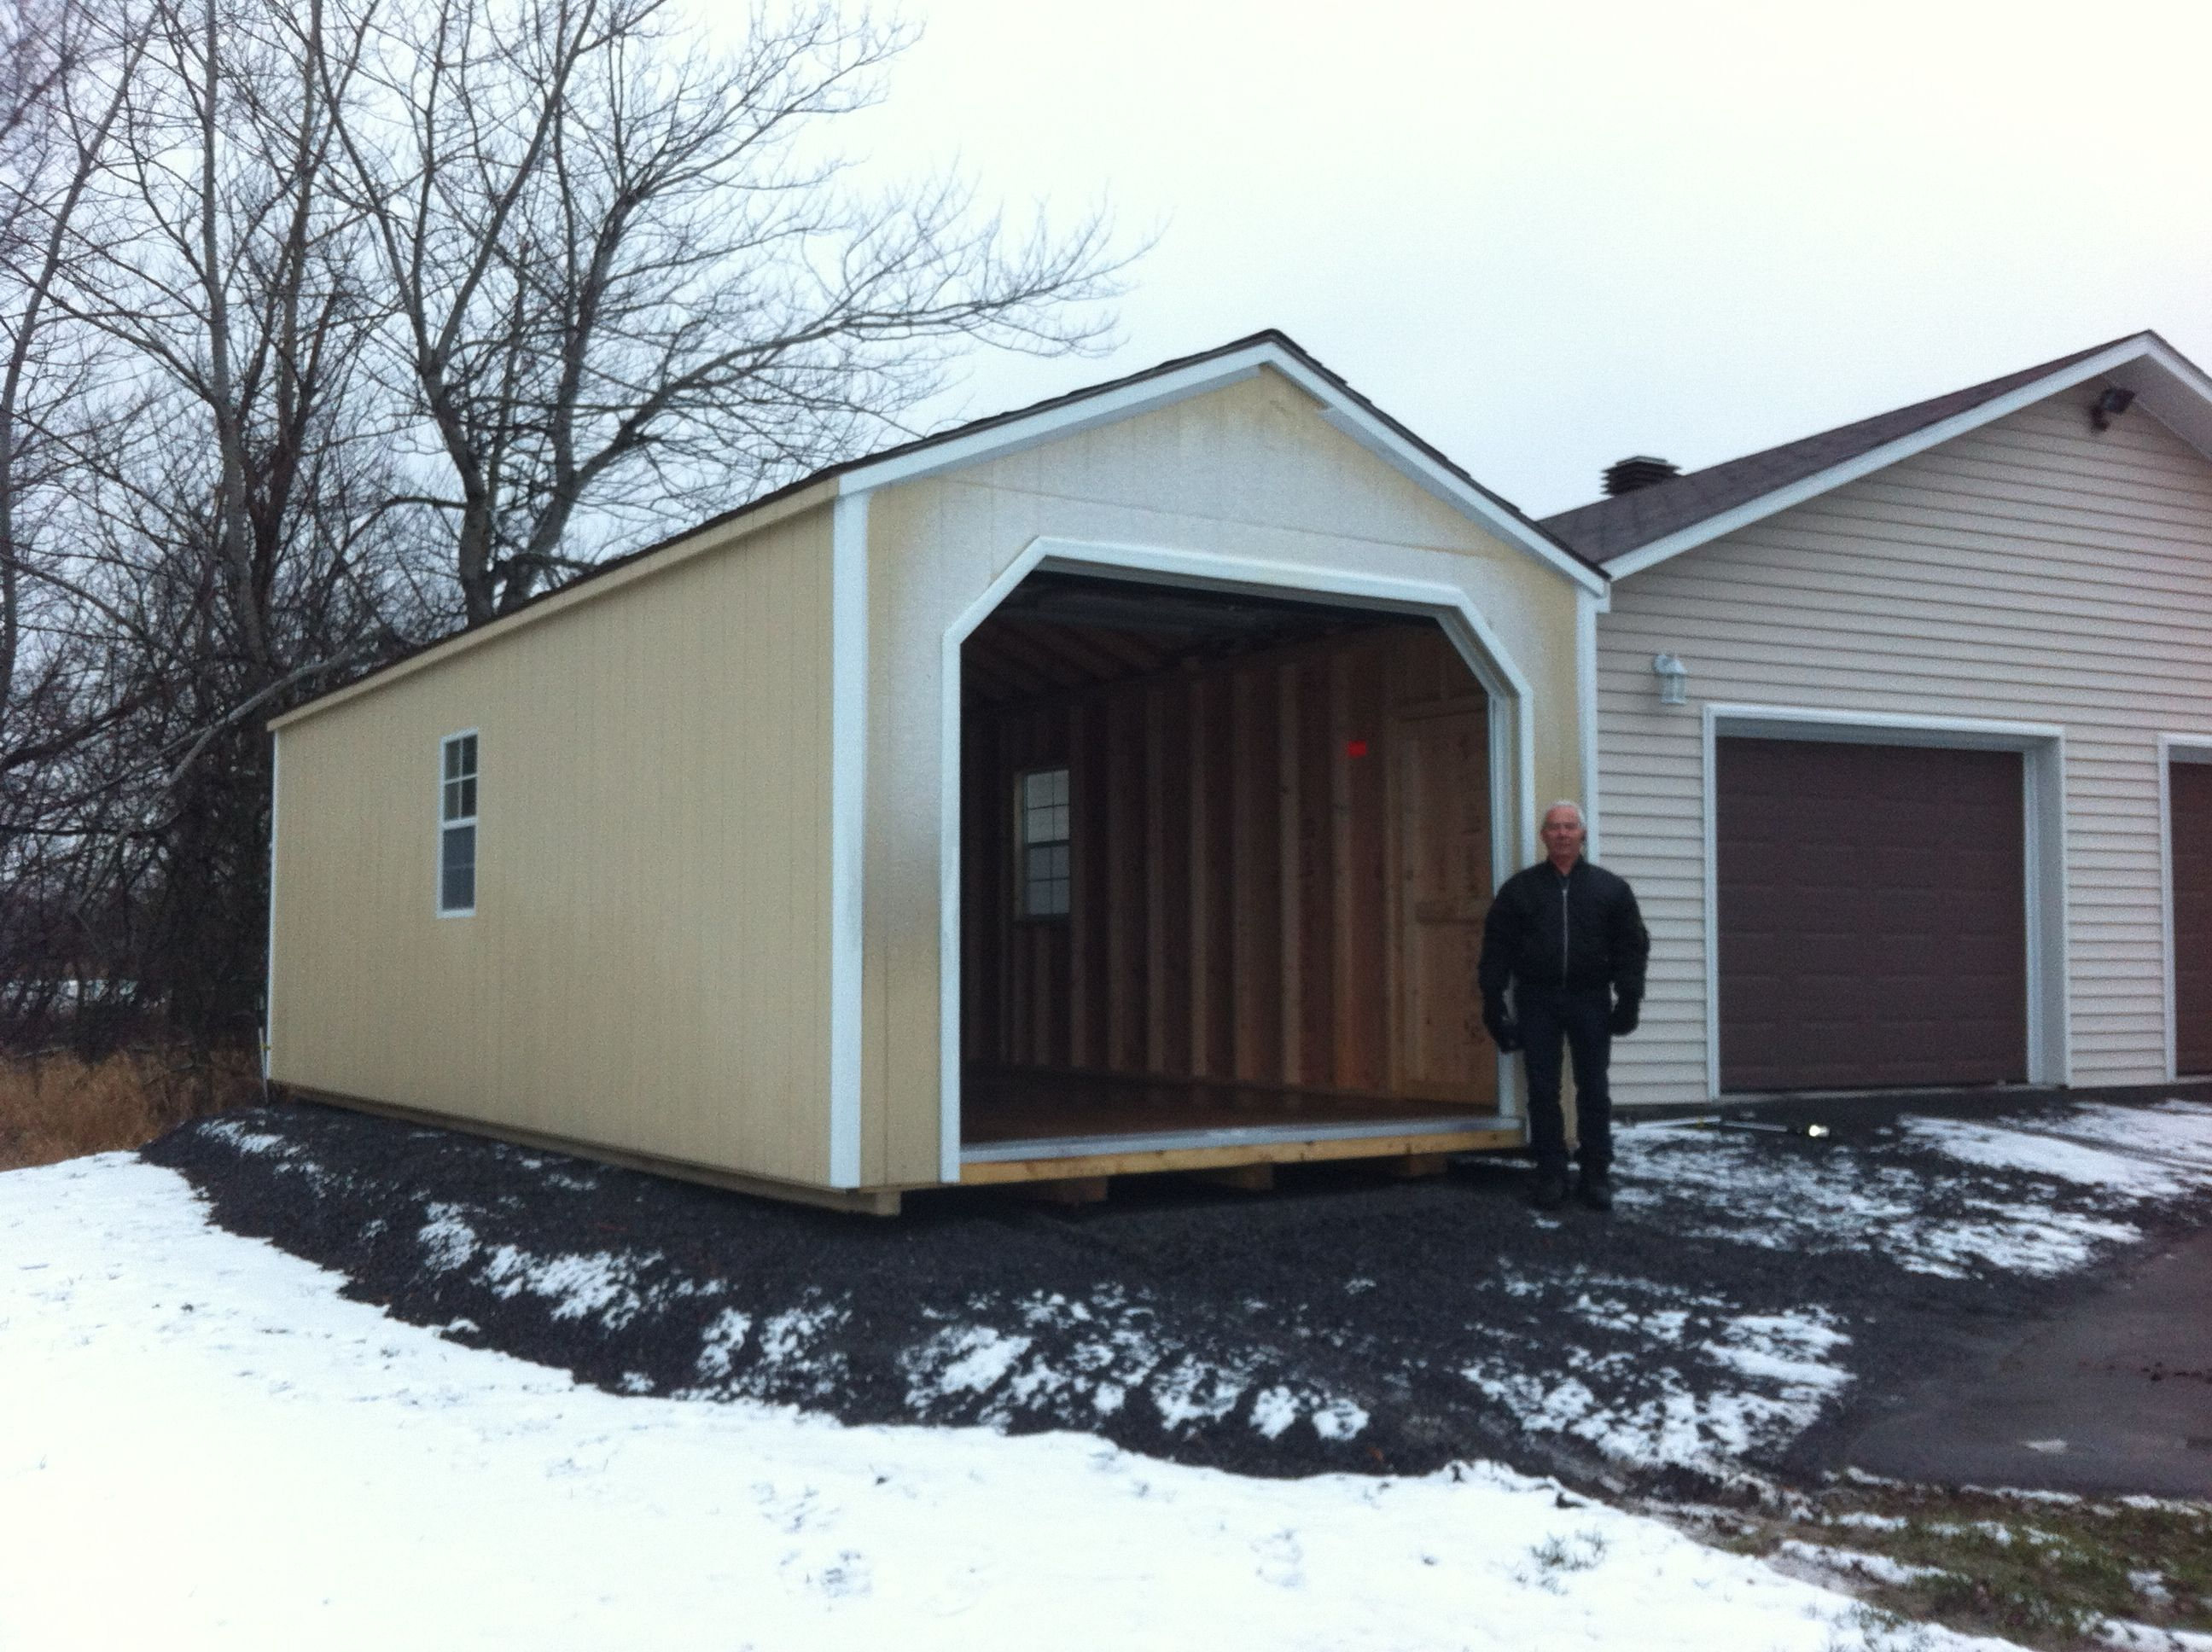 12' X 28' Wooden Portable Garage - Delivered Fully Assembled and Ready for Immediate Use...Visit NorthCountrySheds.com for more info..